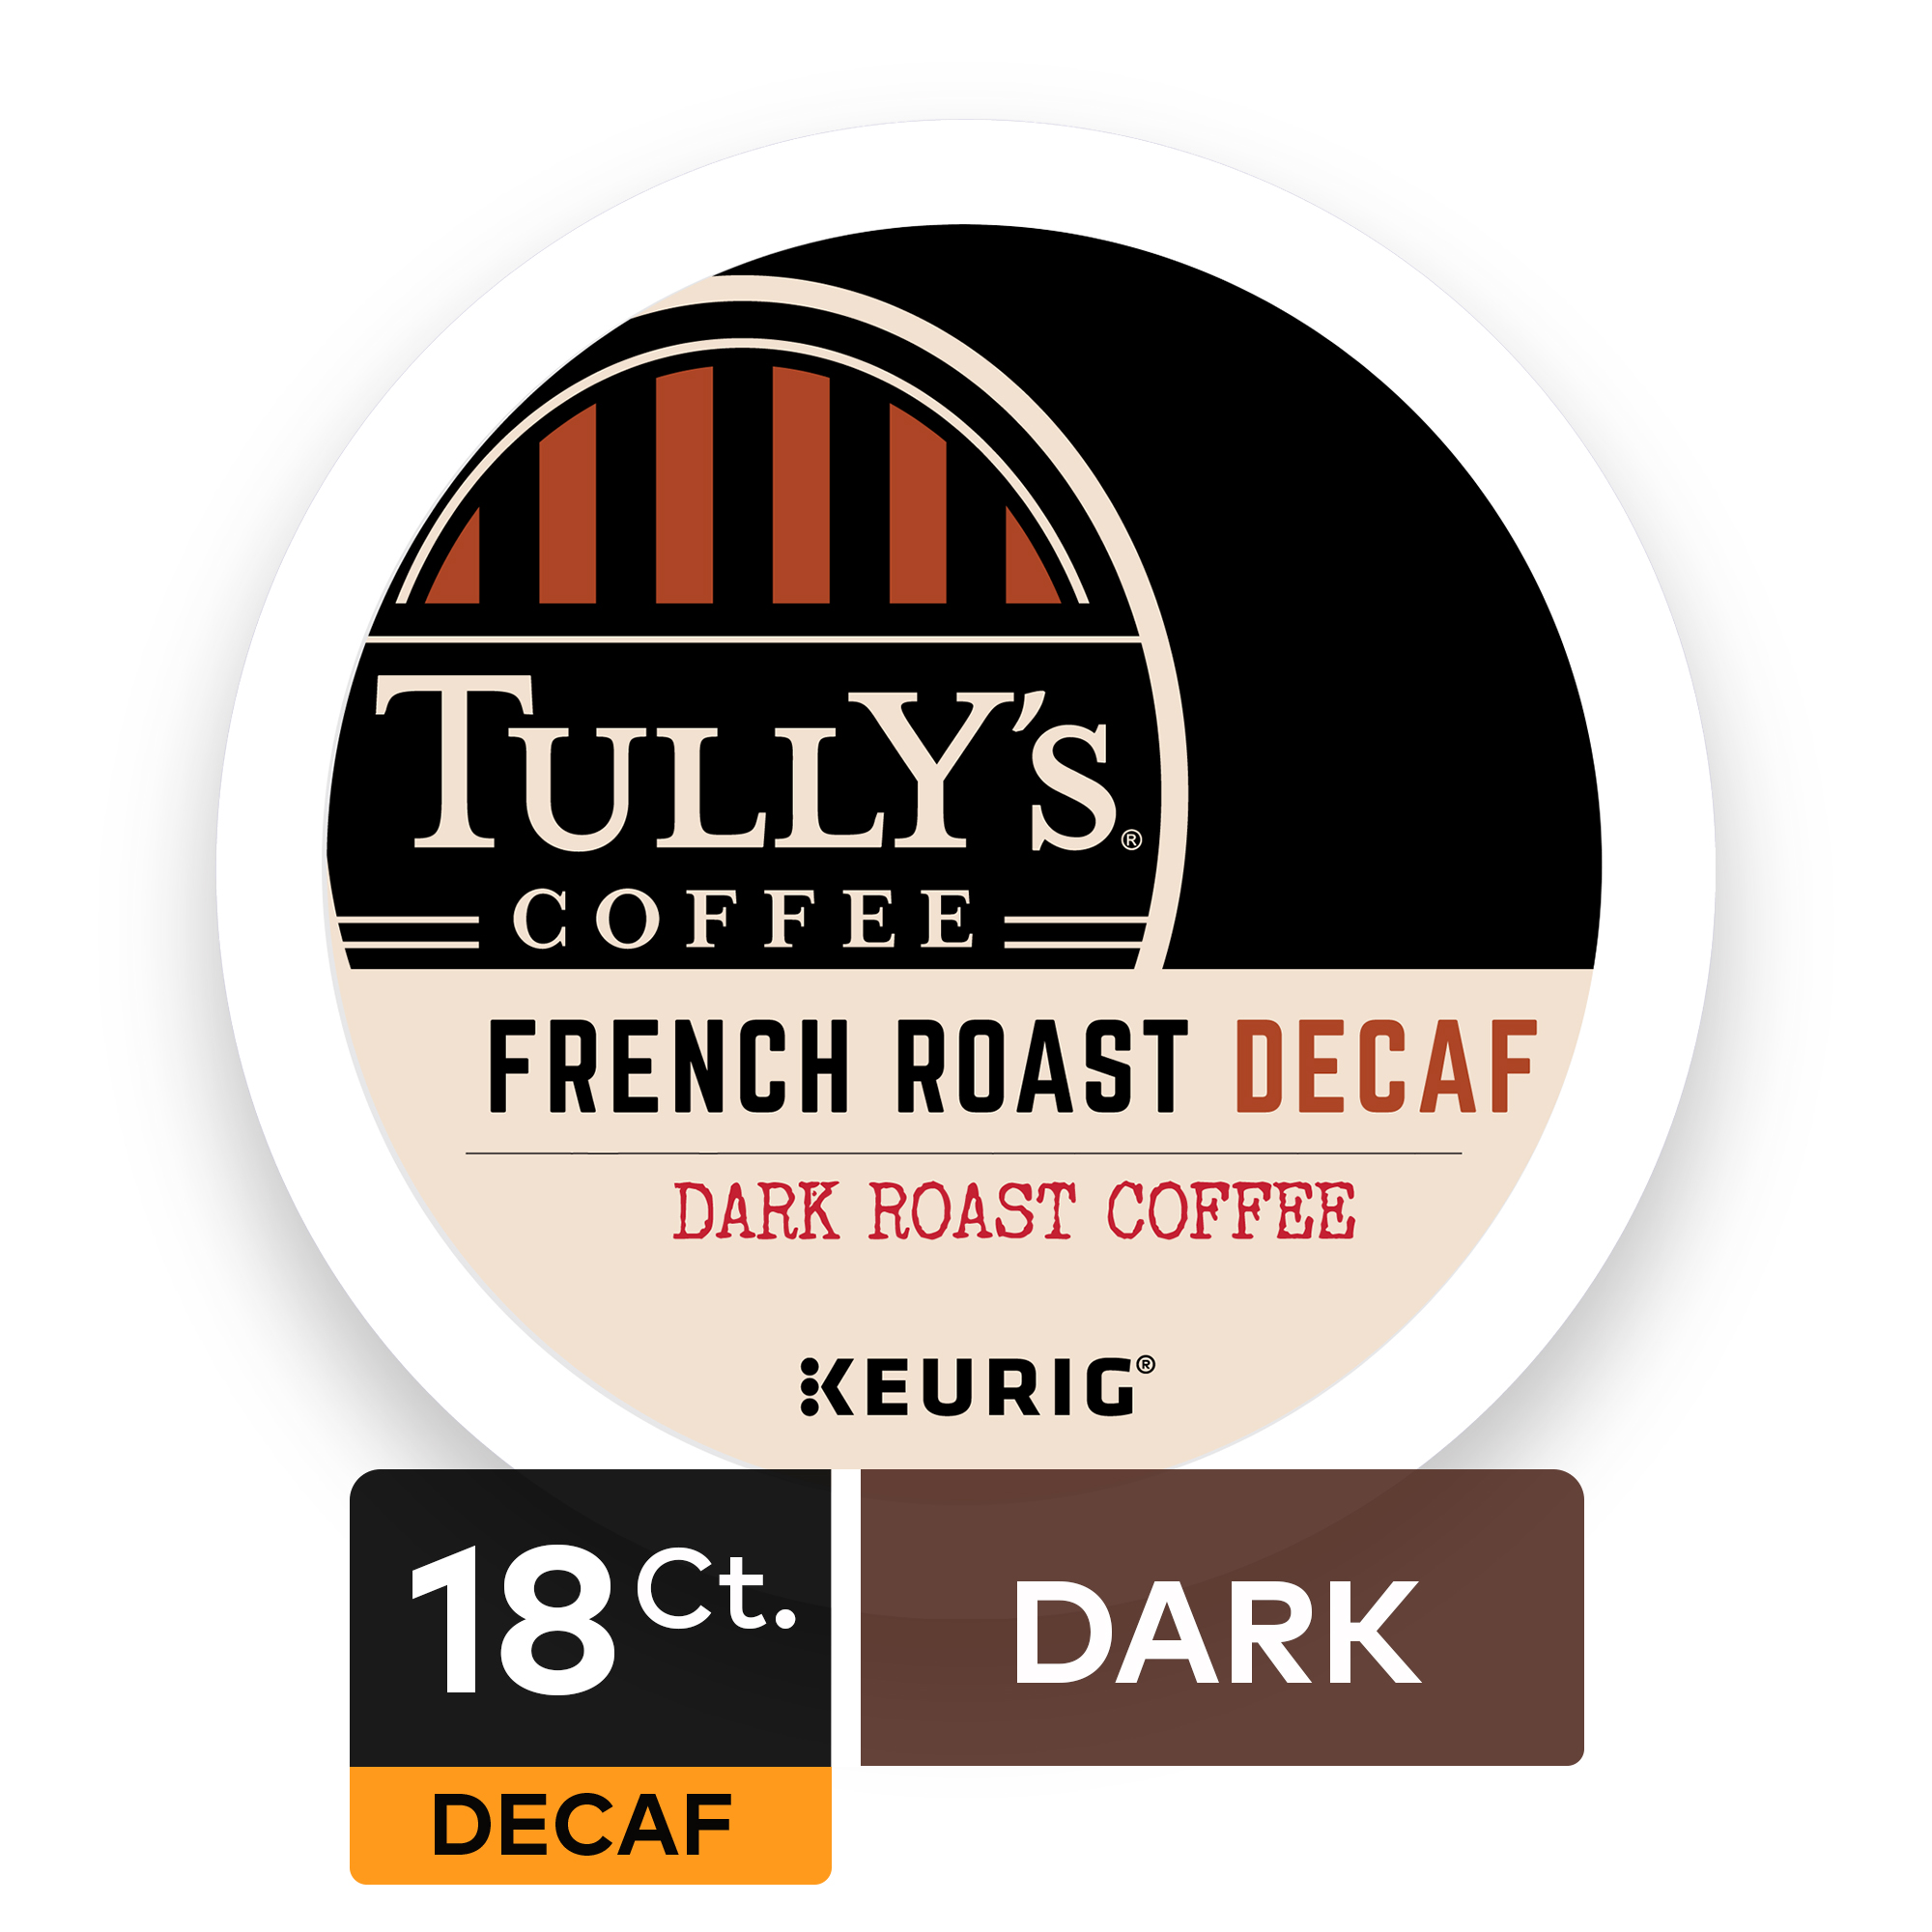 Tully's Coffee French Roast Decaf Keurig Single-Serve K-Cup Pods, Dark Roast Coffee, 18 Count